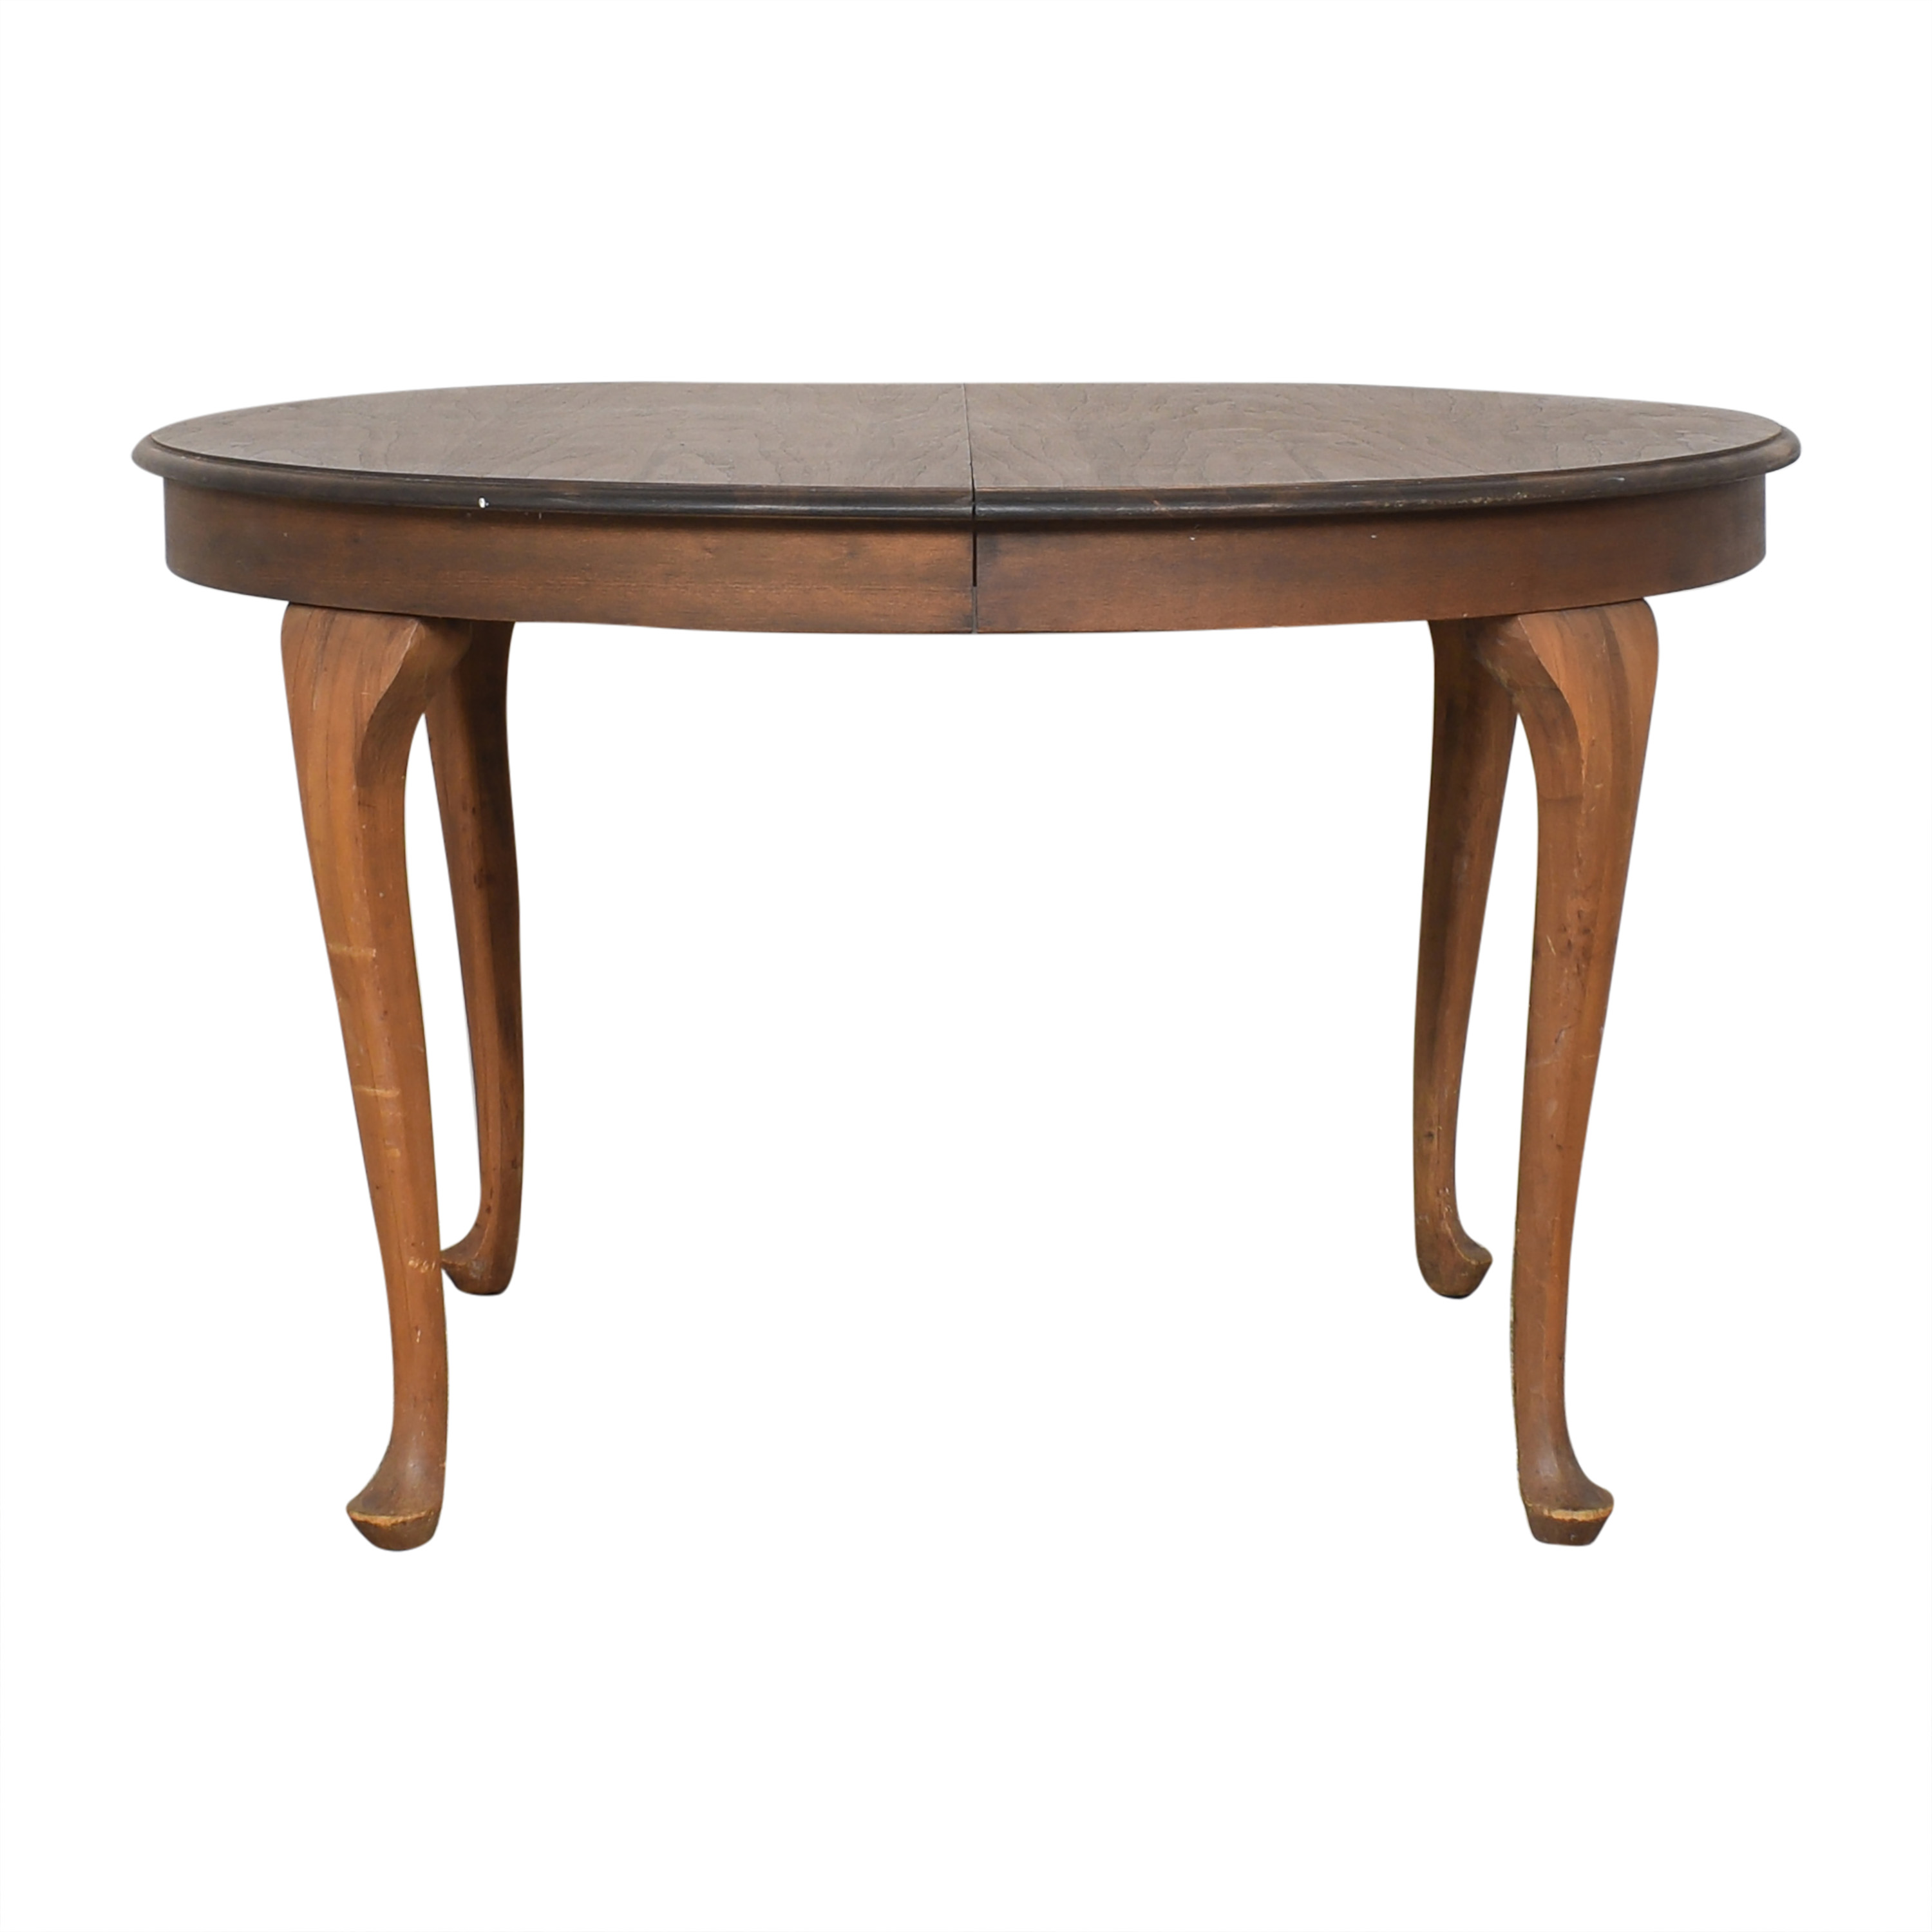 buy  Antique Round Queen Anne Dining Table online